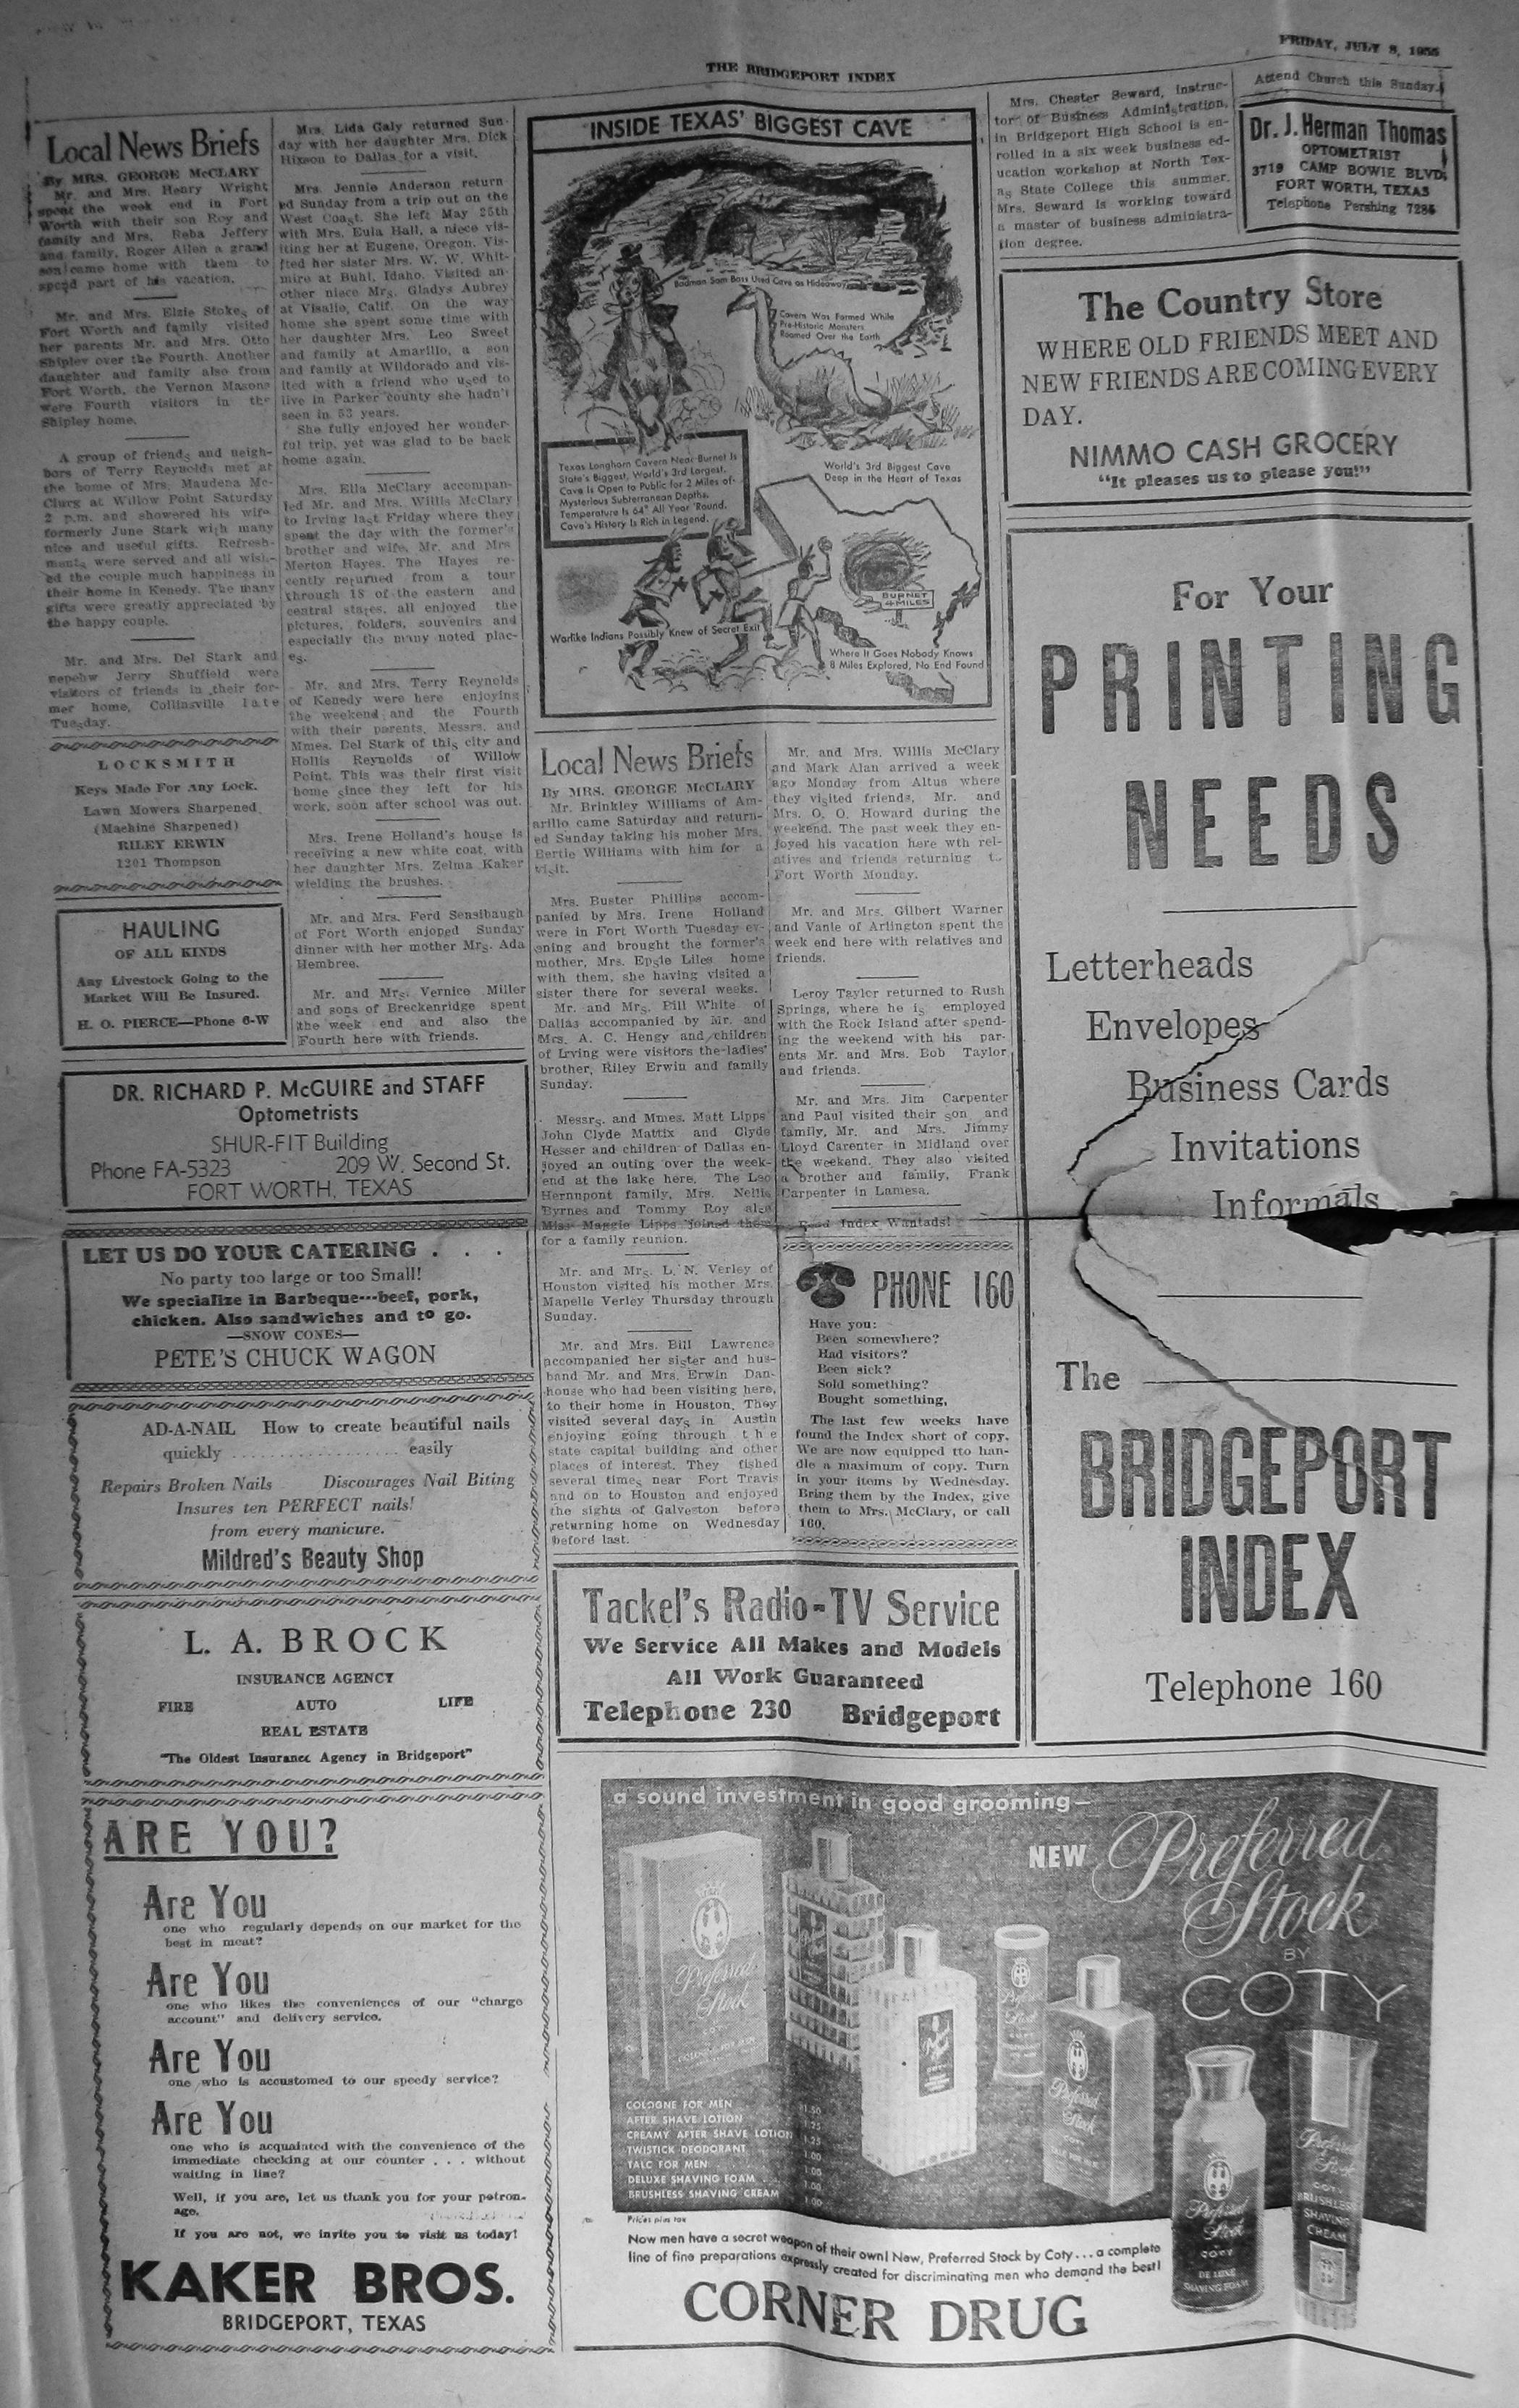 Index of Names A G from the 1955 Bridgeport Index Newspaper